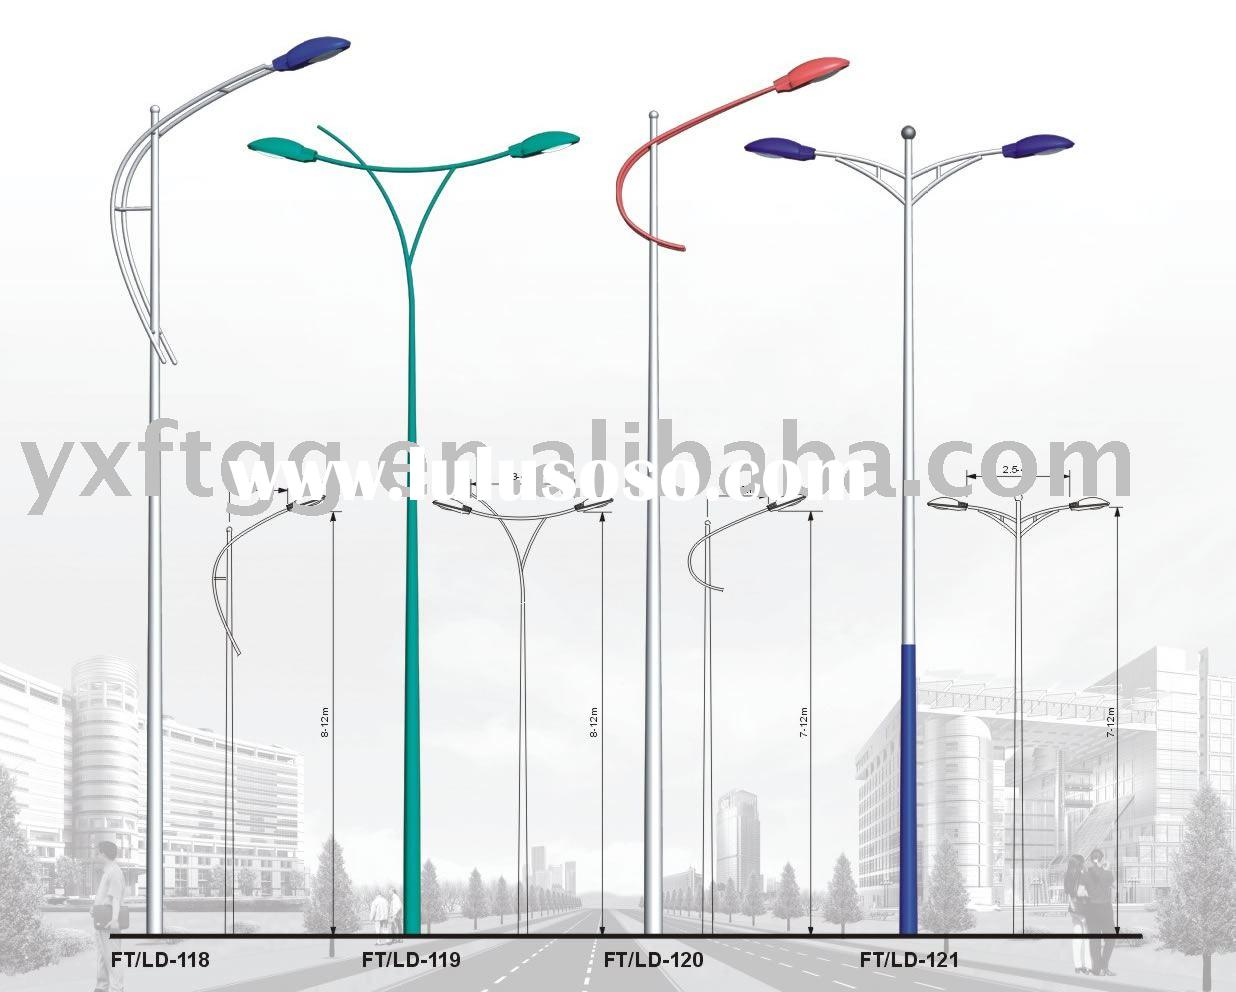 ft/ld118-121 street light poles